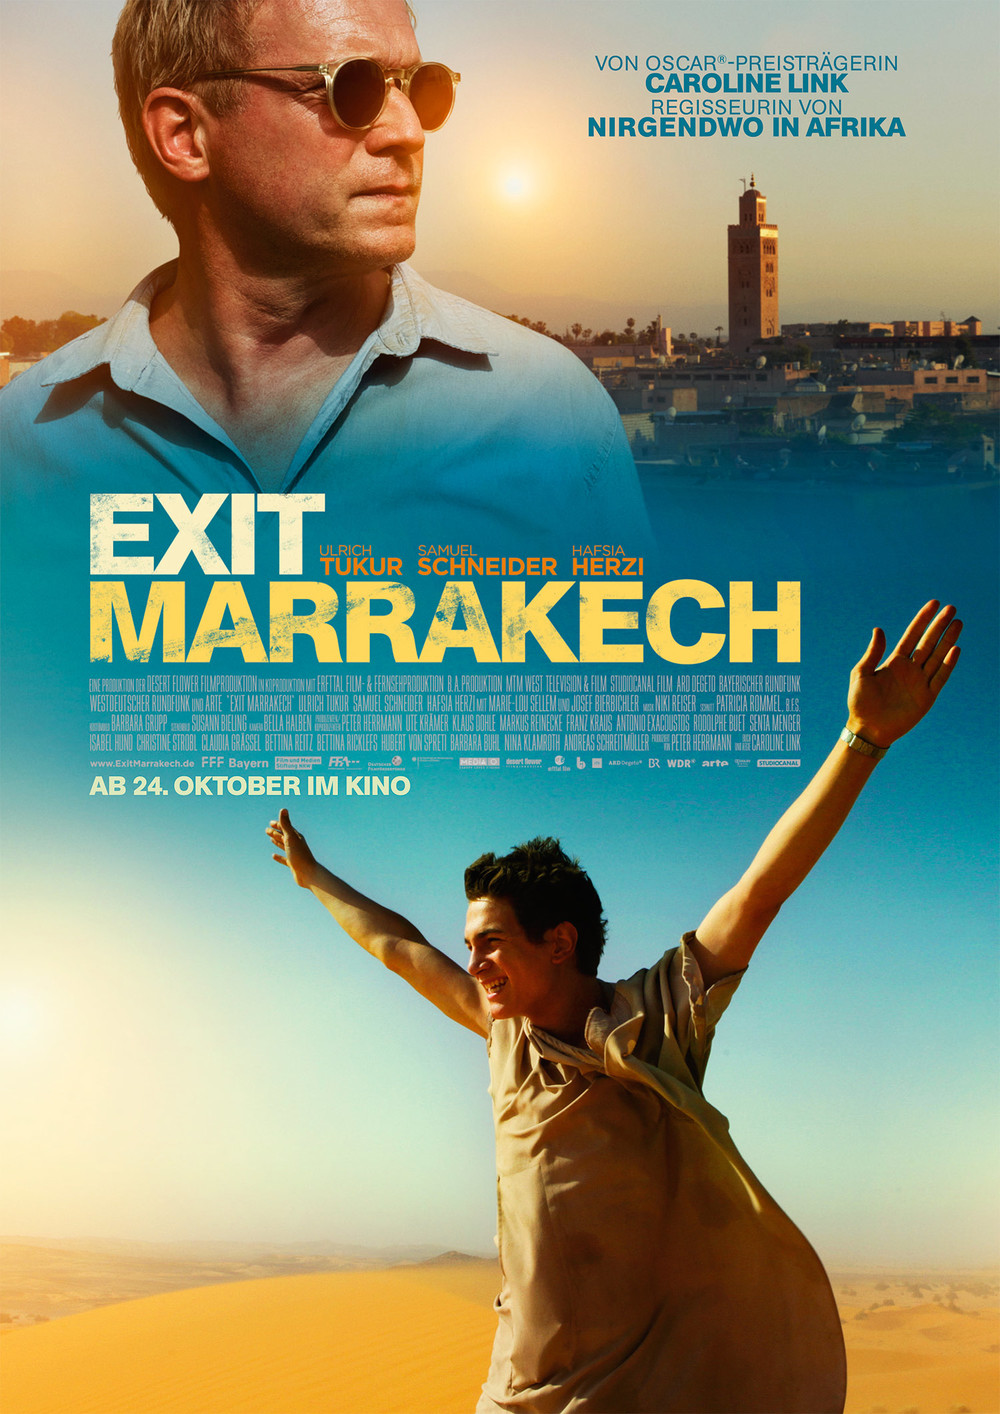 "Studiocanal<a href=""/exit-marrakech"">→</a><strong>Adaption</strong>"